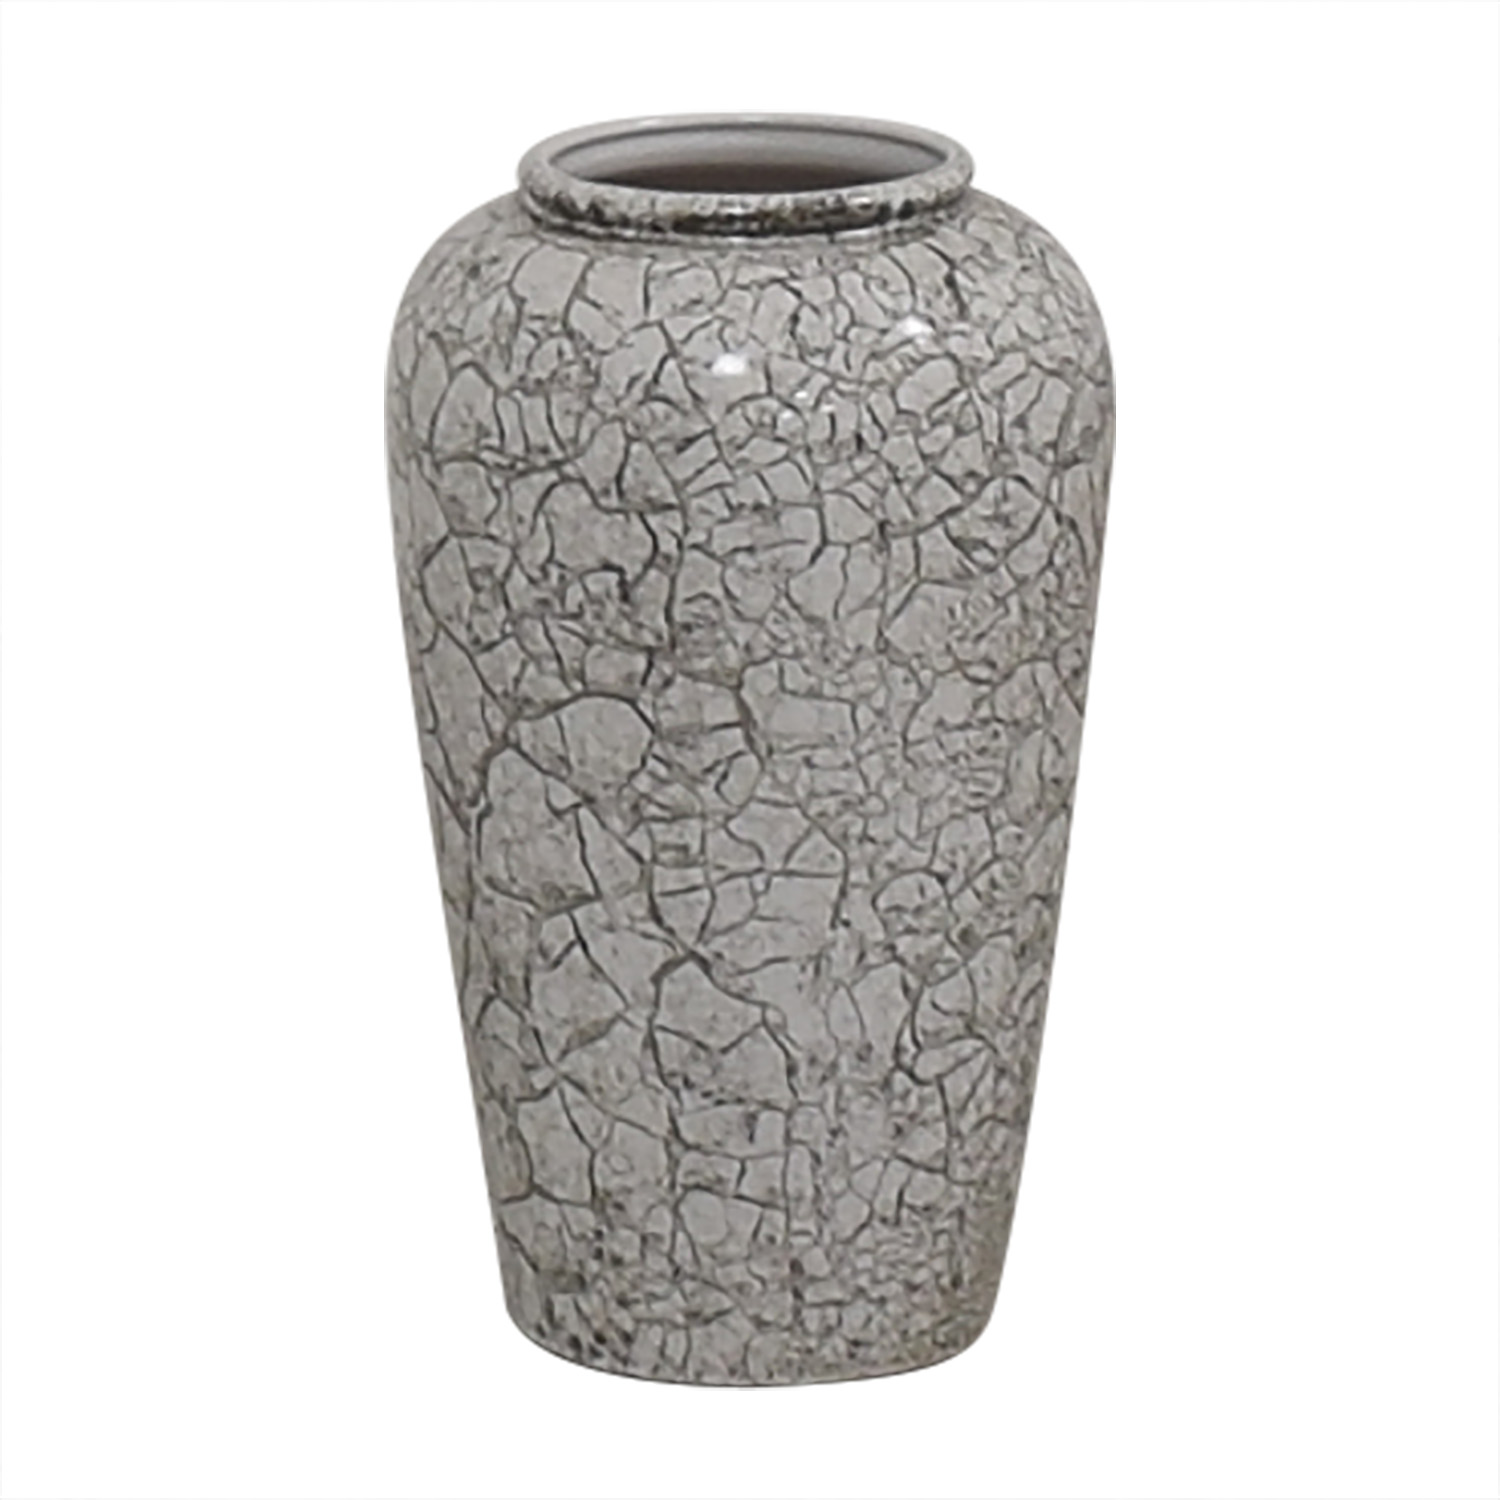 German White and Grey Crackled Effect Vase coupon